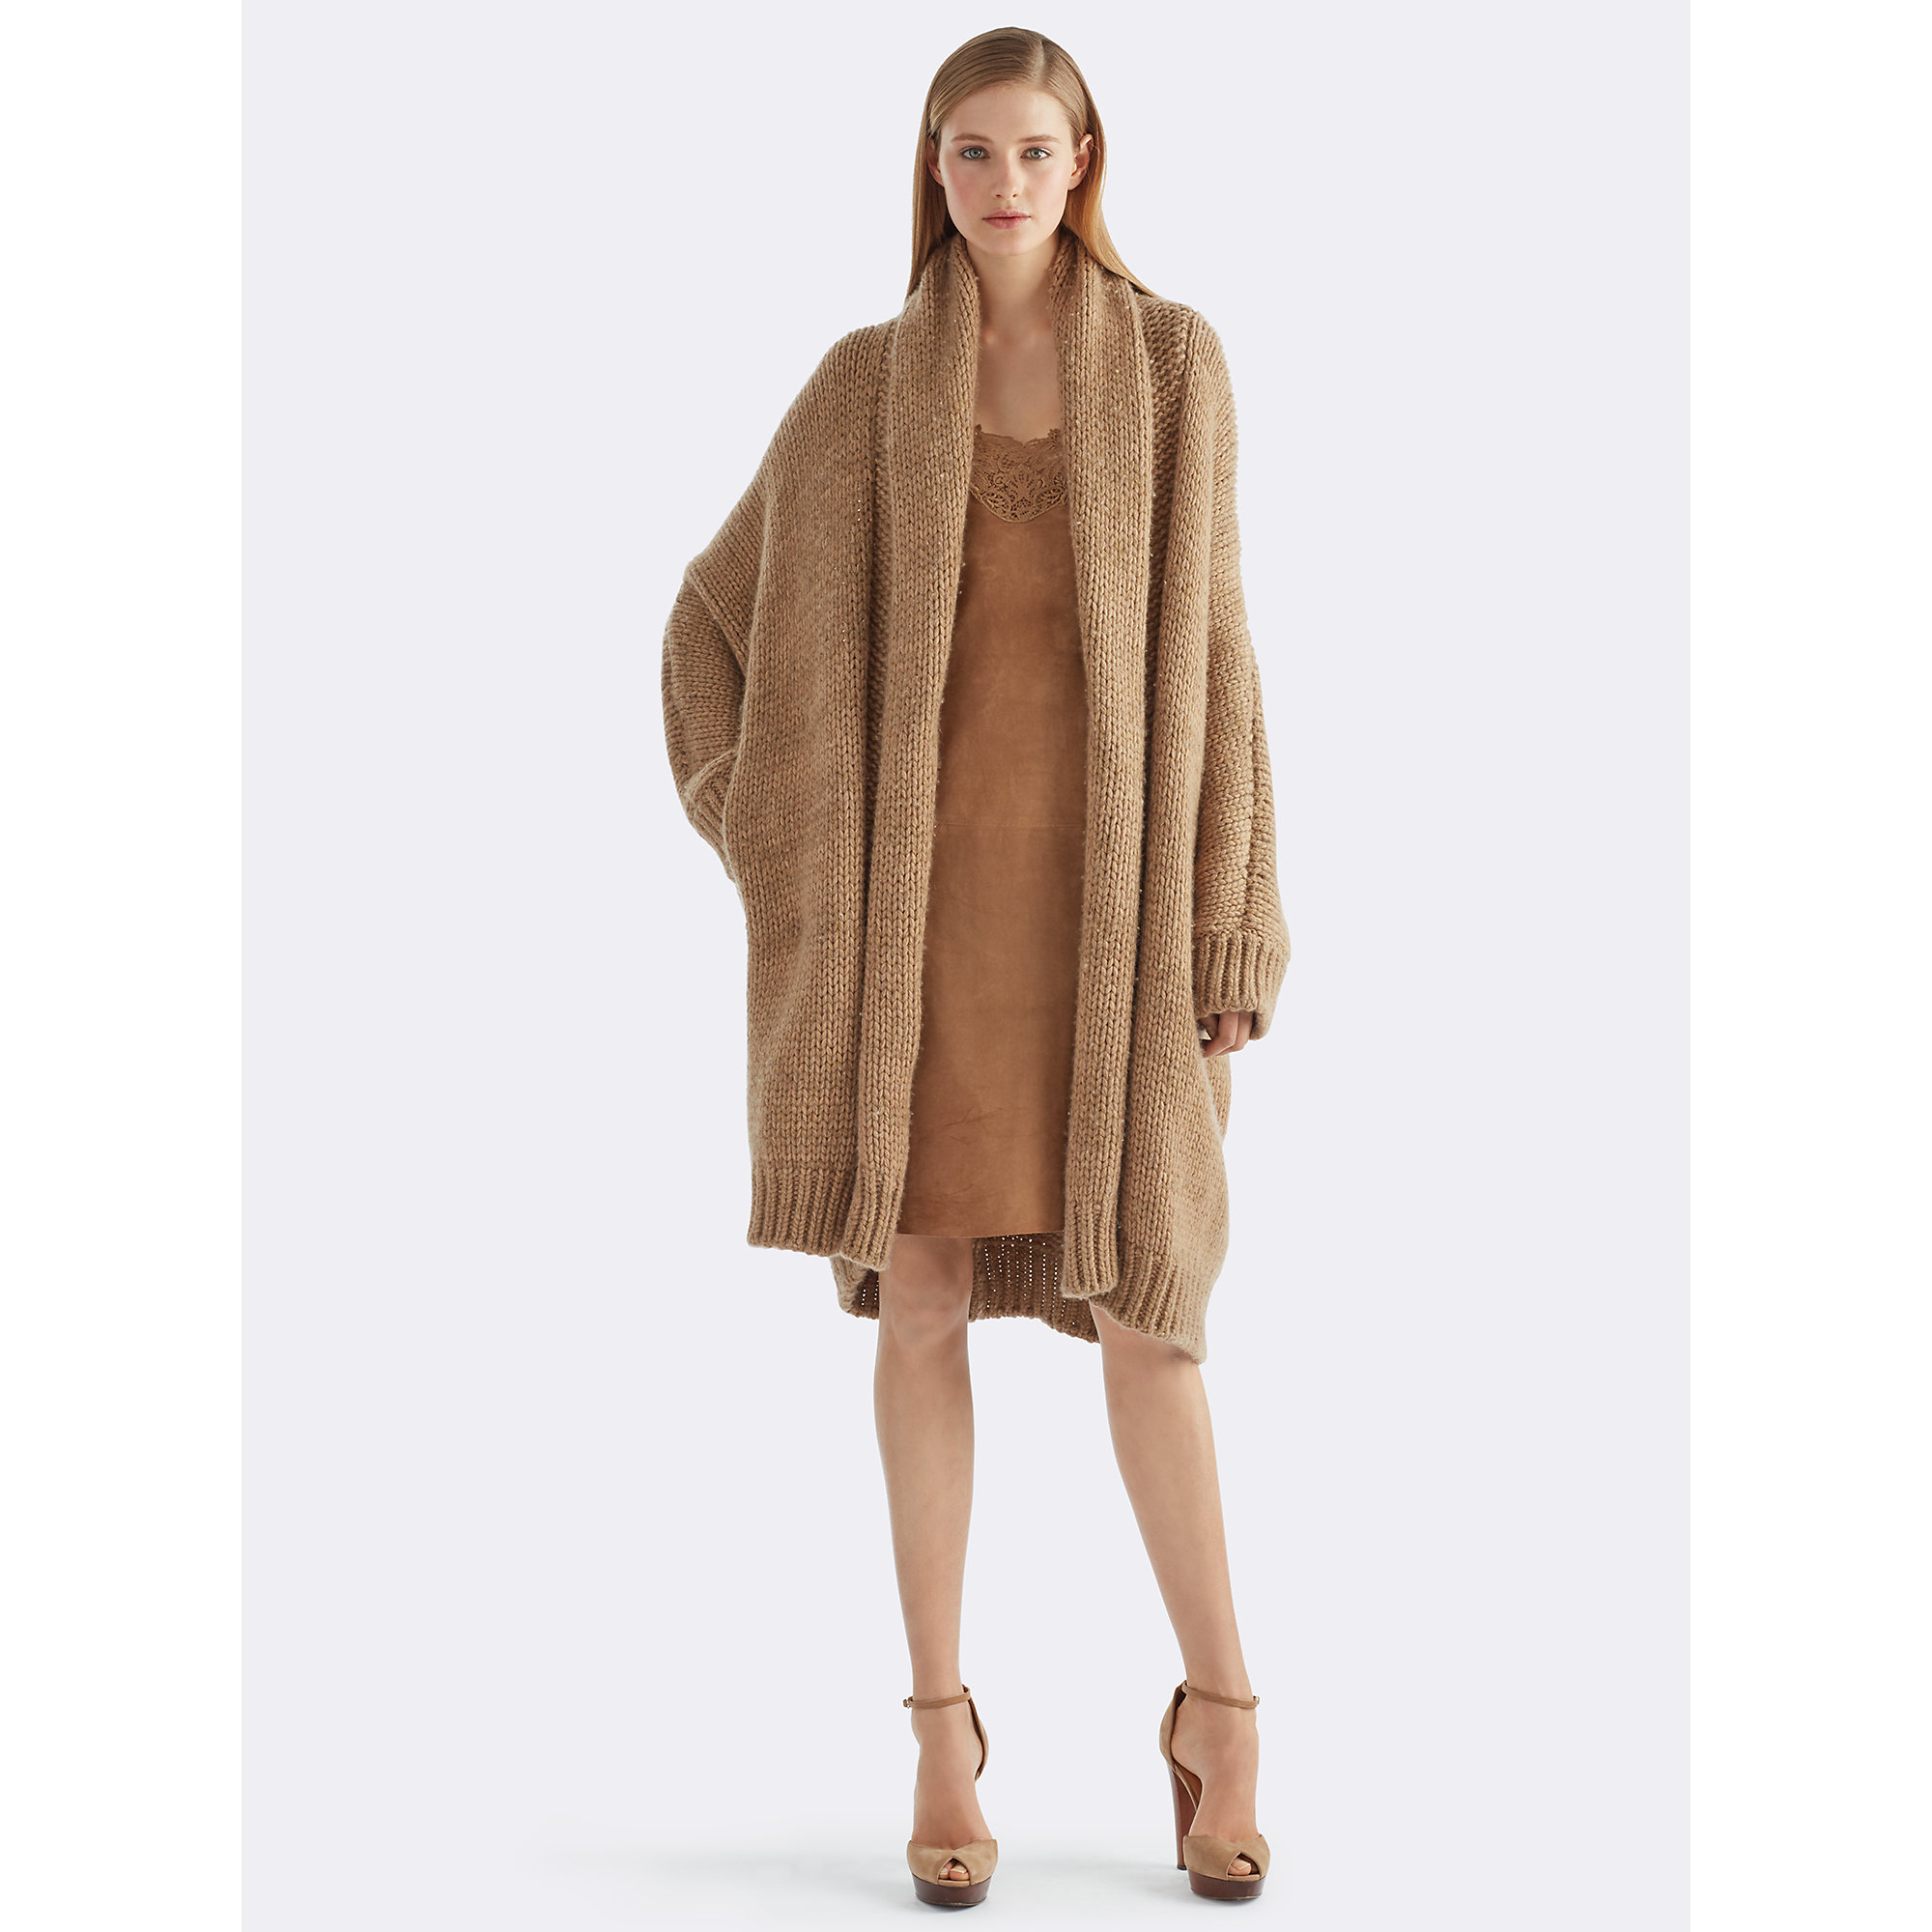 Ralph lauren Cashmere Sweater Coat in Natural | Lyst